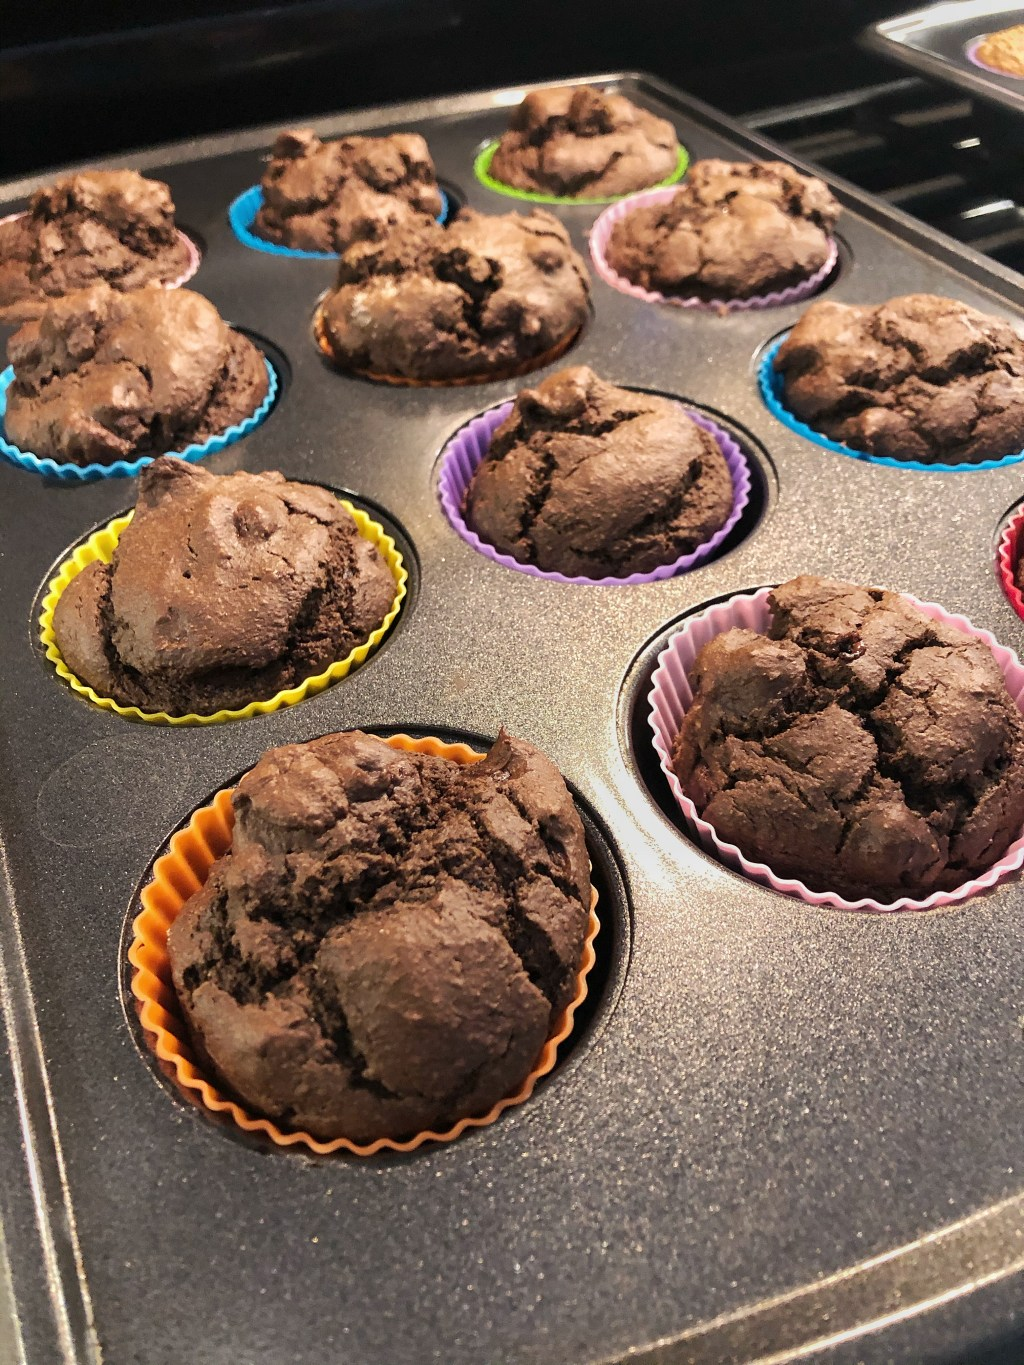 HEALTHY DARK CHOCOLATE AVOCADO MUFFINS RECIPE | Need a homemade recipe for delicious, moist muffins that are sweet with cocoa powder, have no refined sugars, + are easy to make? Just put all the ingredients in a blender or food processor, blend, and bake! They're a great, quick snack for weight loss, clean eating, and even for kids. Click to get this easy, healthy on the go muffins recipe to take to work or satisfy that sweet tooth late at night! #healthy #chocolate #muffins #recipe #avocado